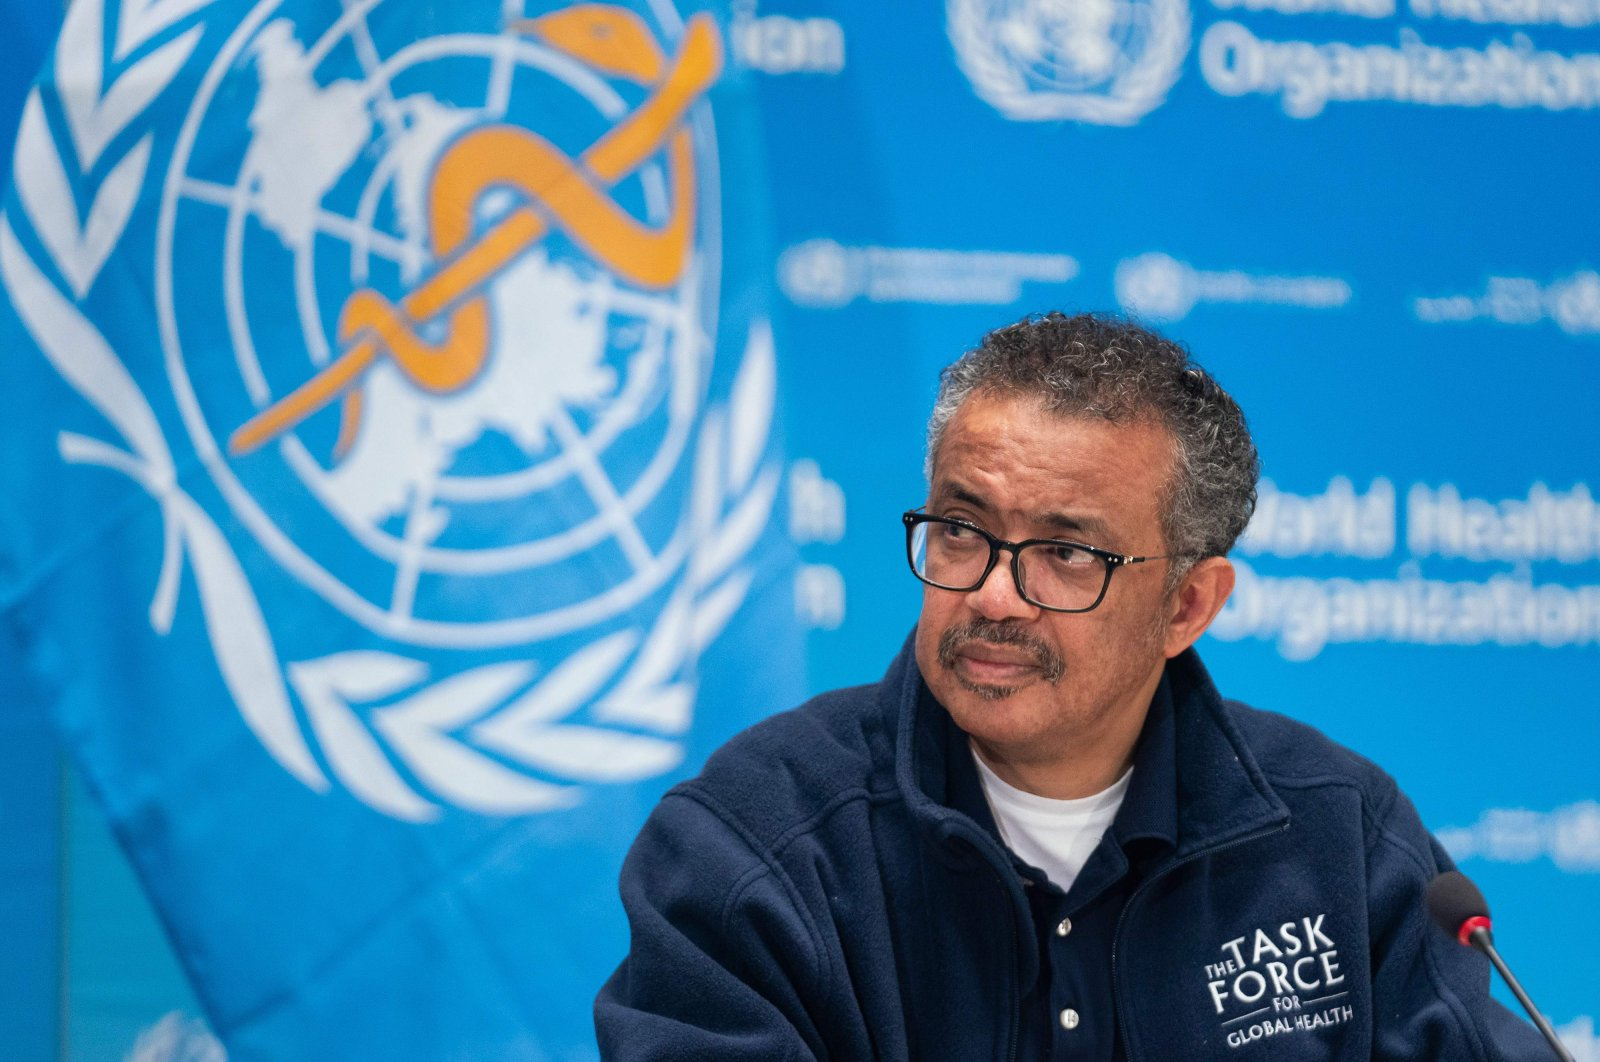 This handout image provided by the World Health Organization (WHO) shows WHO Director-General Tedros Adhanom Ghebreyesus at a virtual press conference following the signing of a cooperation agreement with the International Olympic Committee (IOC), Geneva, May 16, 2020. (Photo by Christopher Black / World Health Organization via AFP Photo)